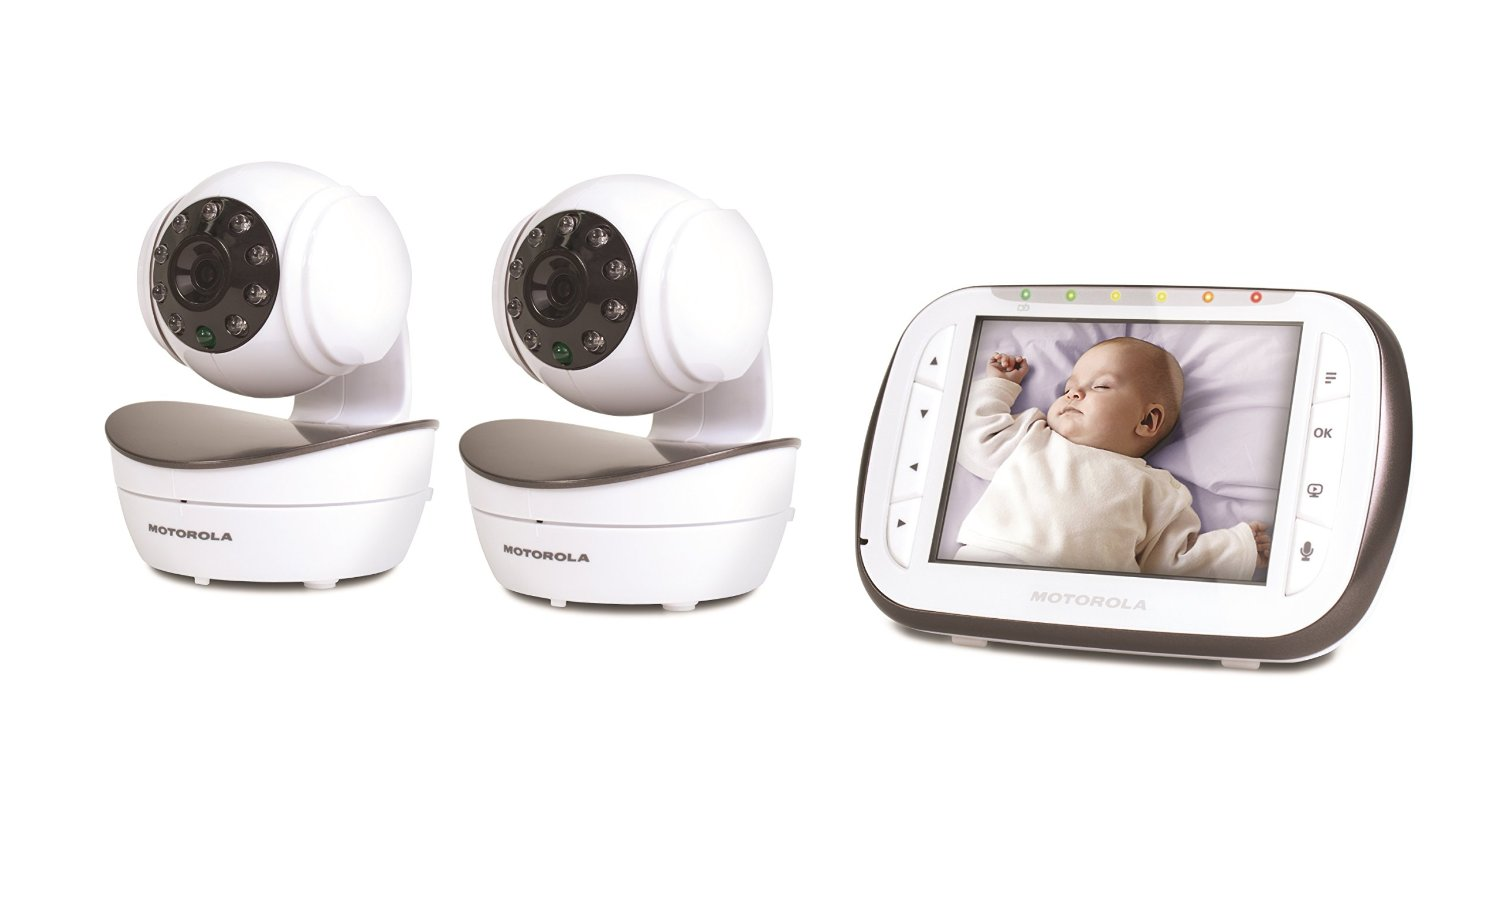 Mbp43 2 Digital Video Baby Monitor